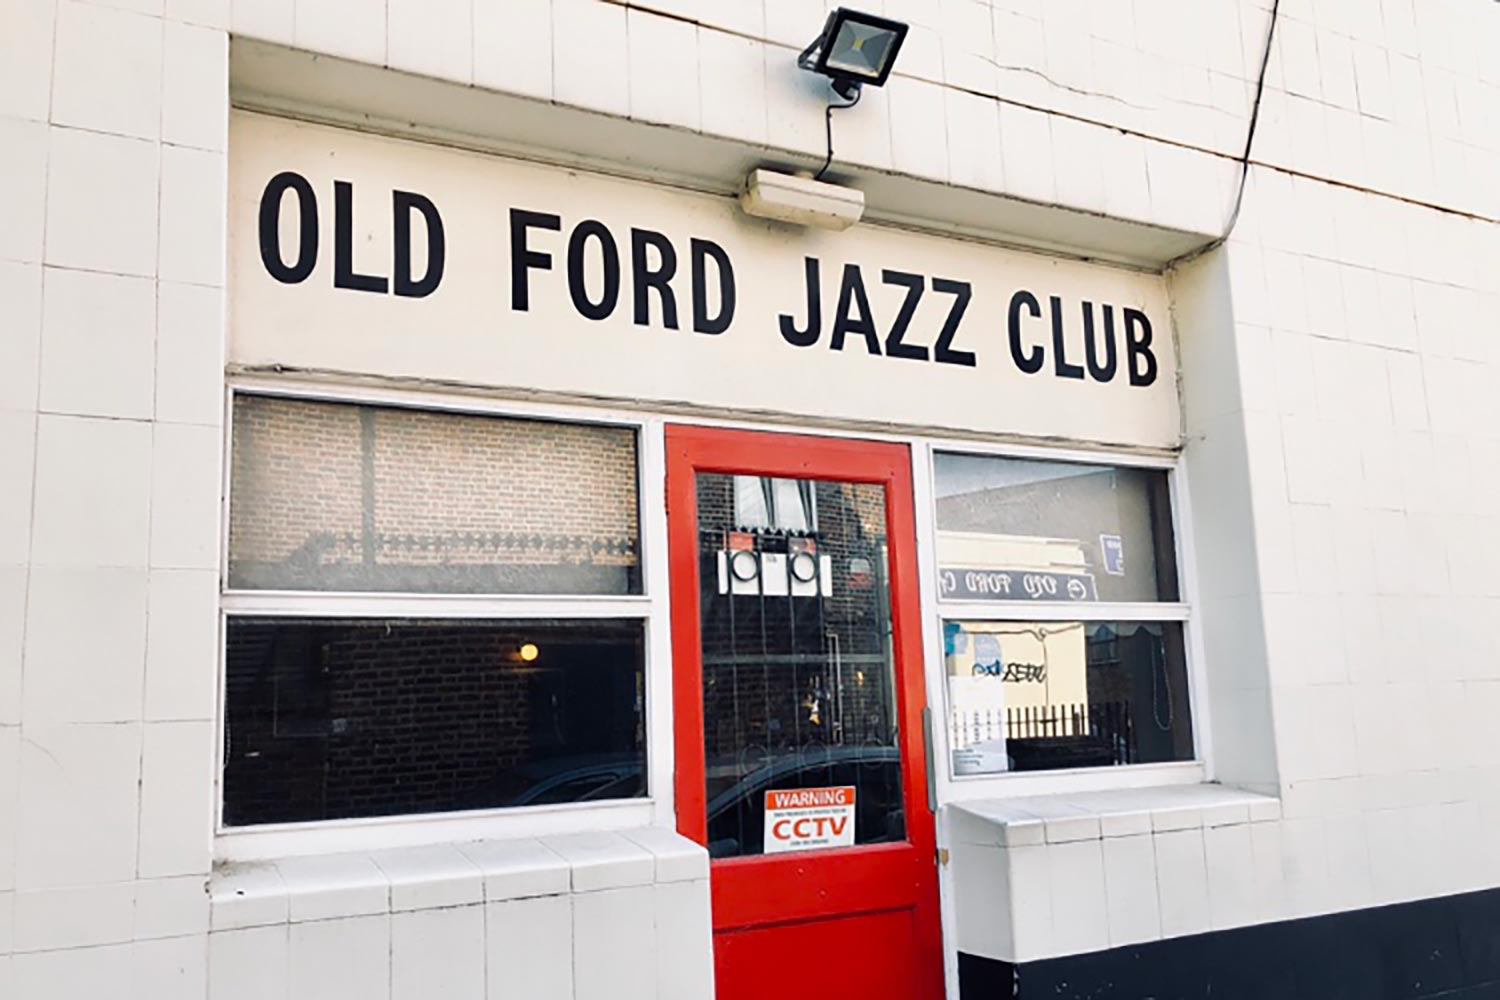 Old ford jazz club in Mile End